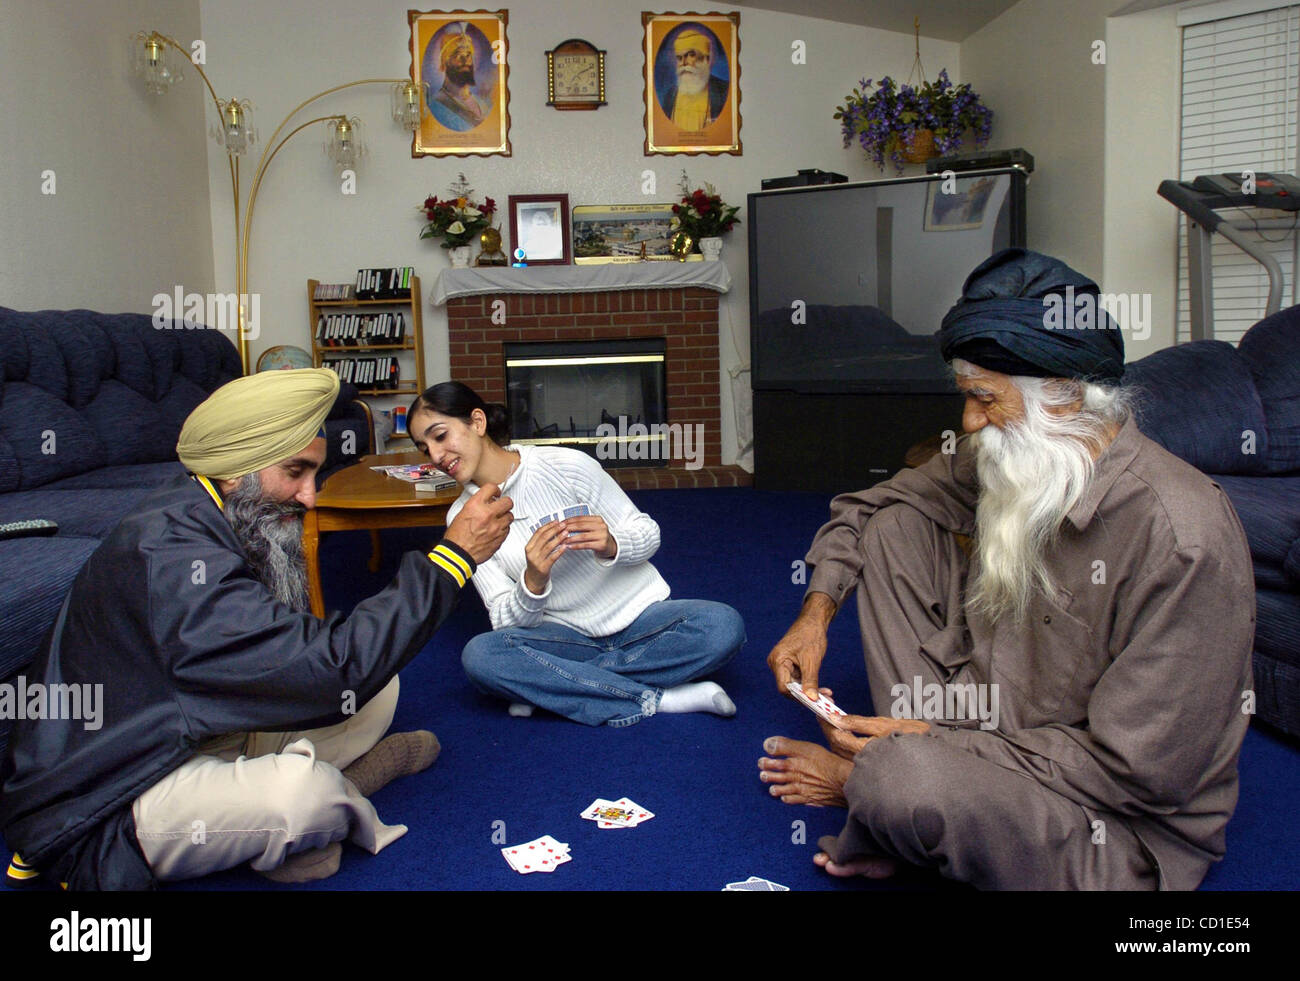 VET PROJECT:  Ranbir Kaur, cq, 19, center, checks out the cards of her 45-year-old dad Mahan Nijjar, cq, 45, left, - Stock Image